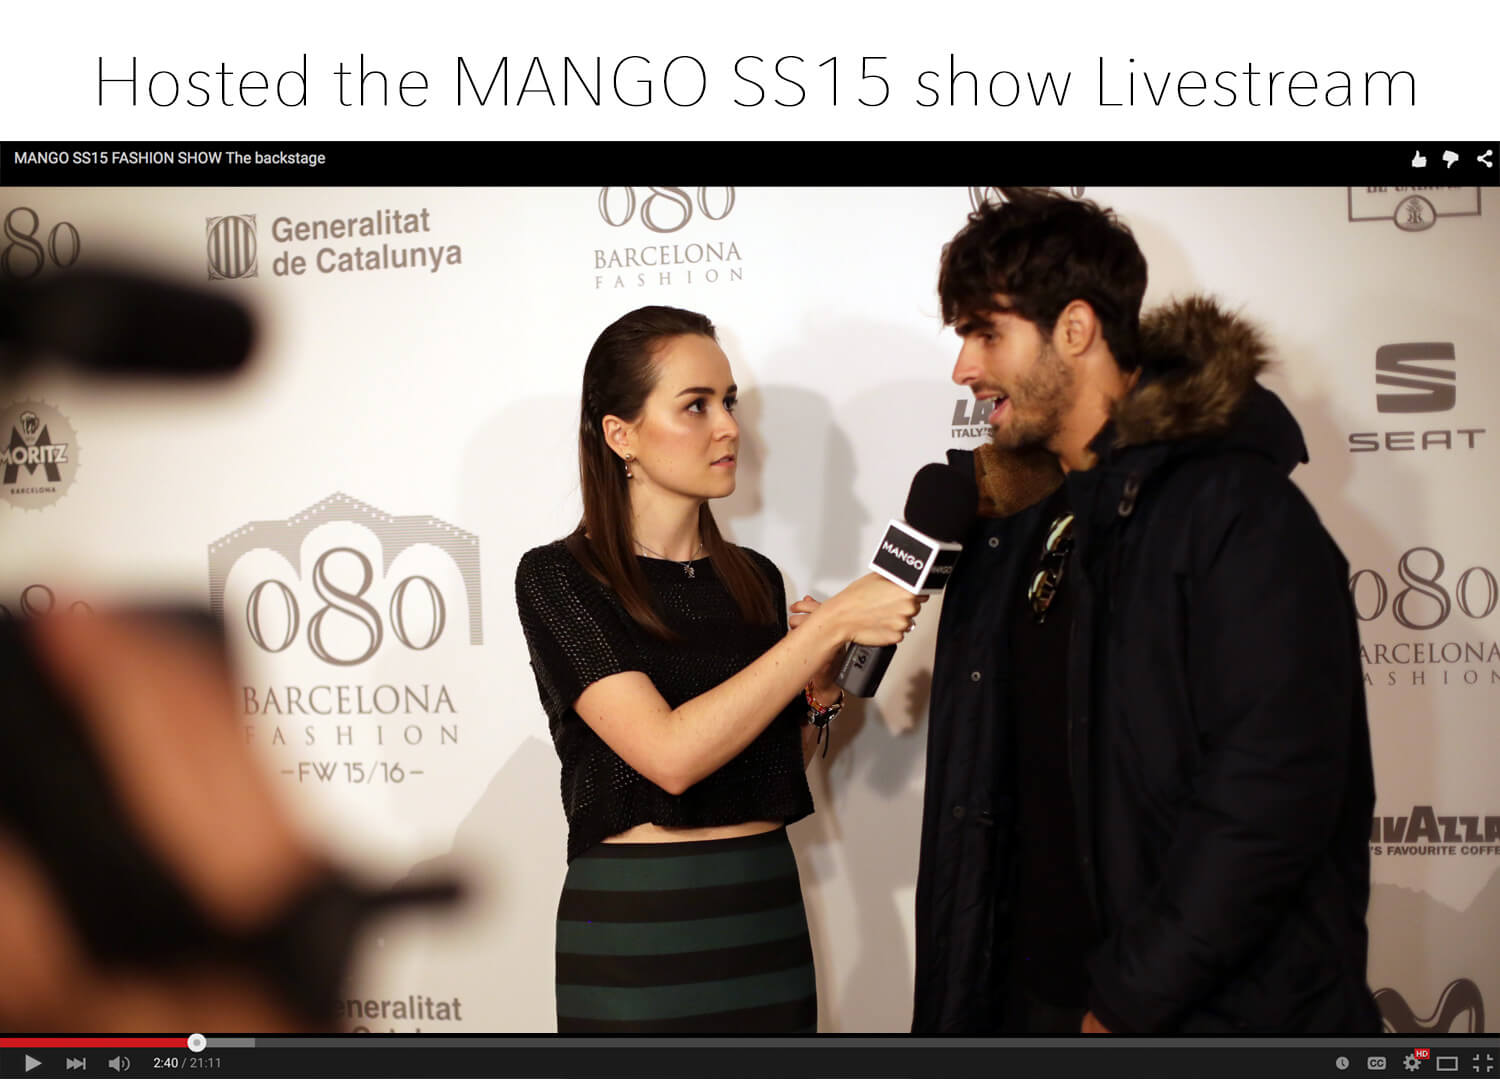 Andy Torres hosted the MANGO SS15 lifestream backstage before the fashion show